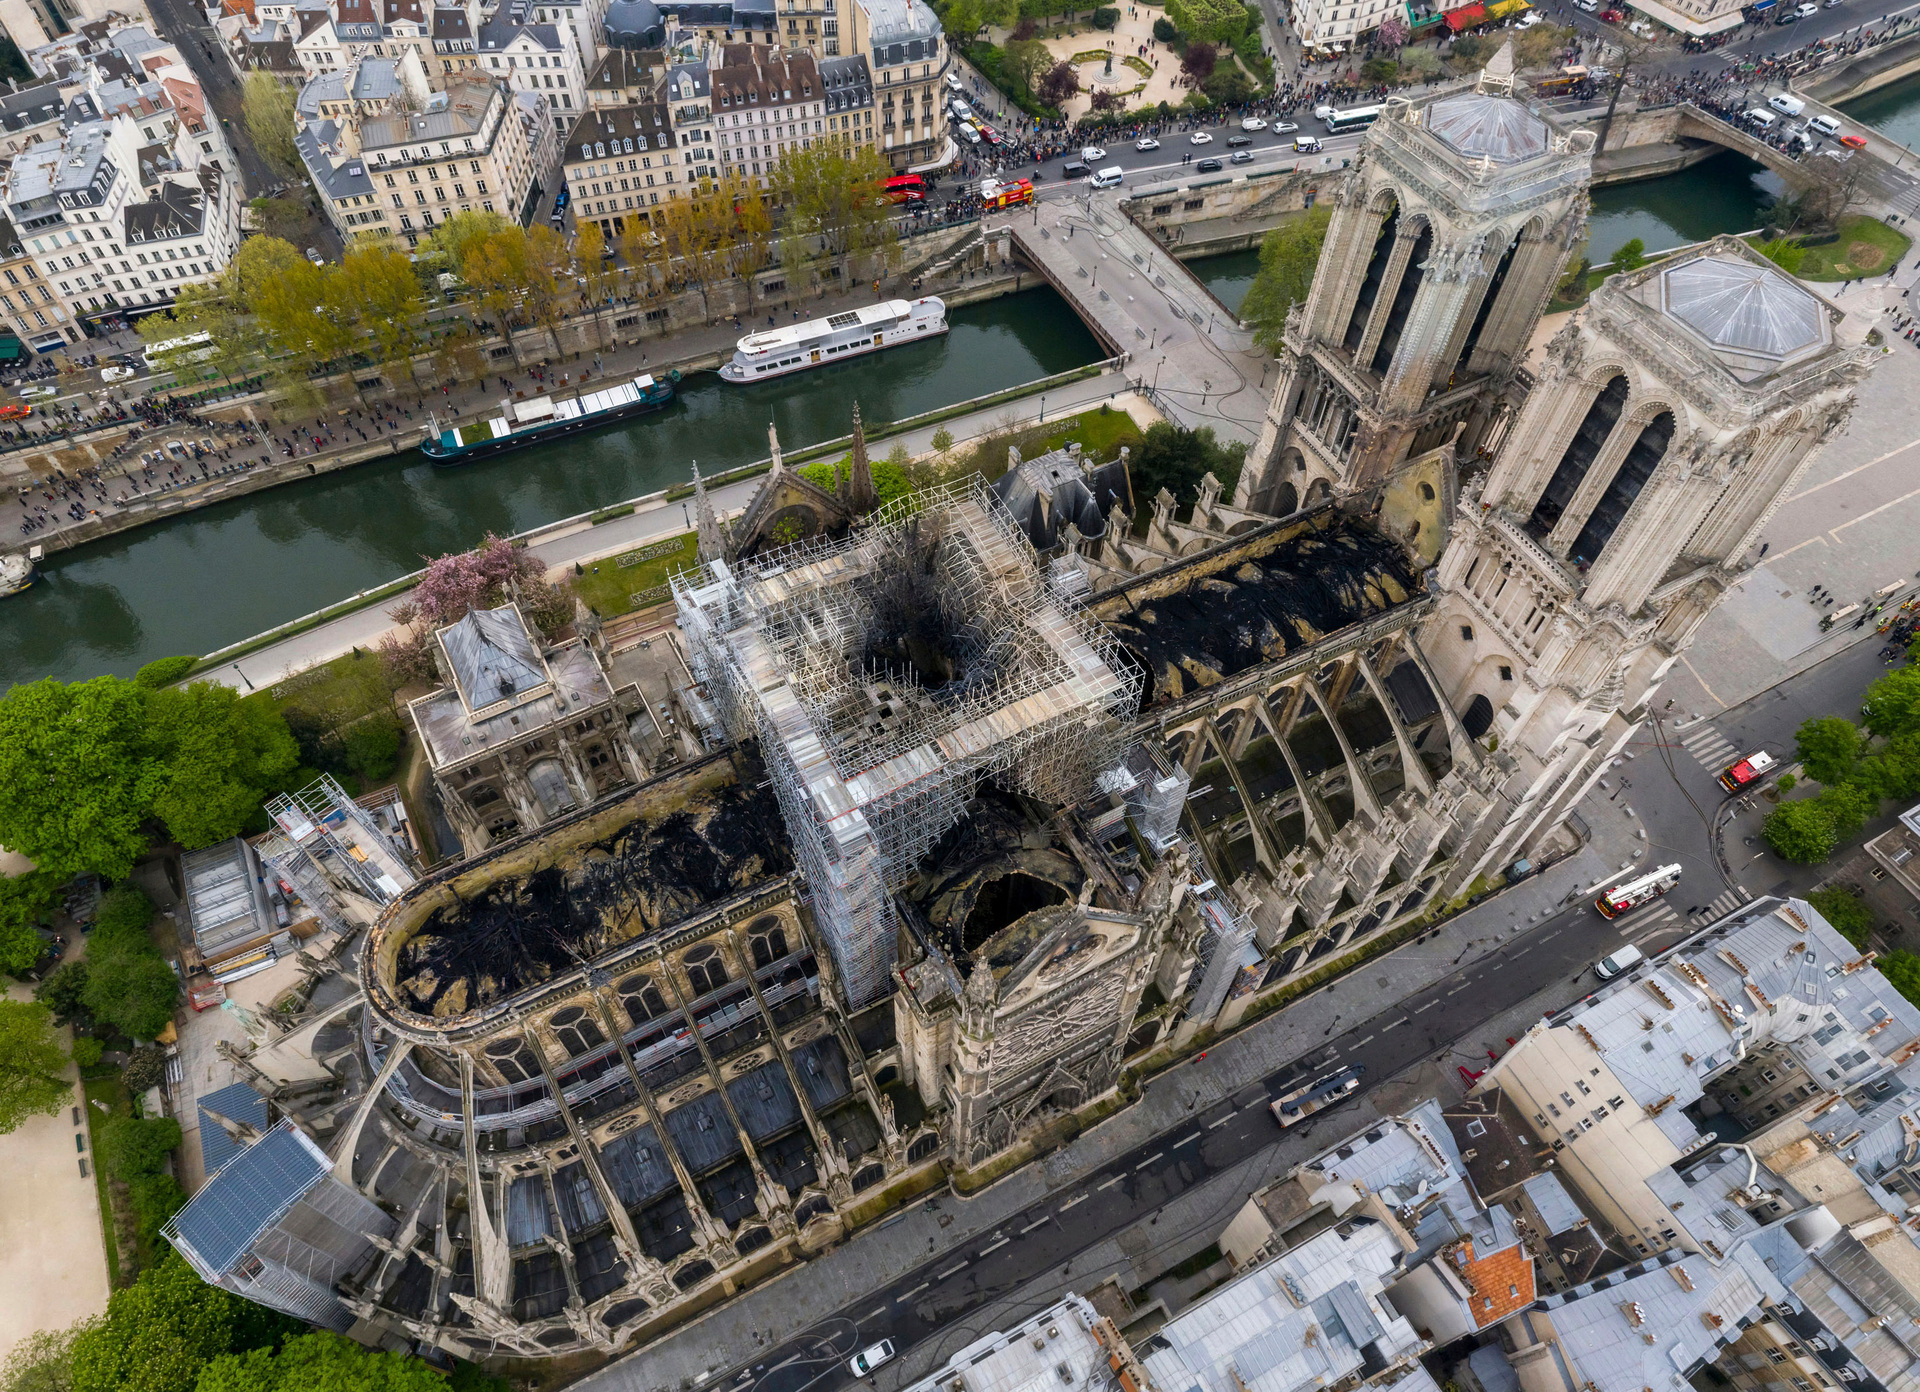 Drone-eye view: Notre Dame's destruction from above